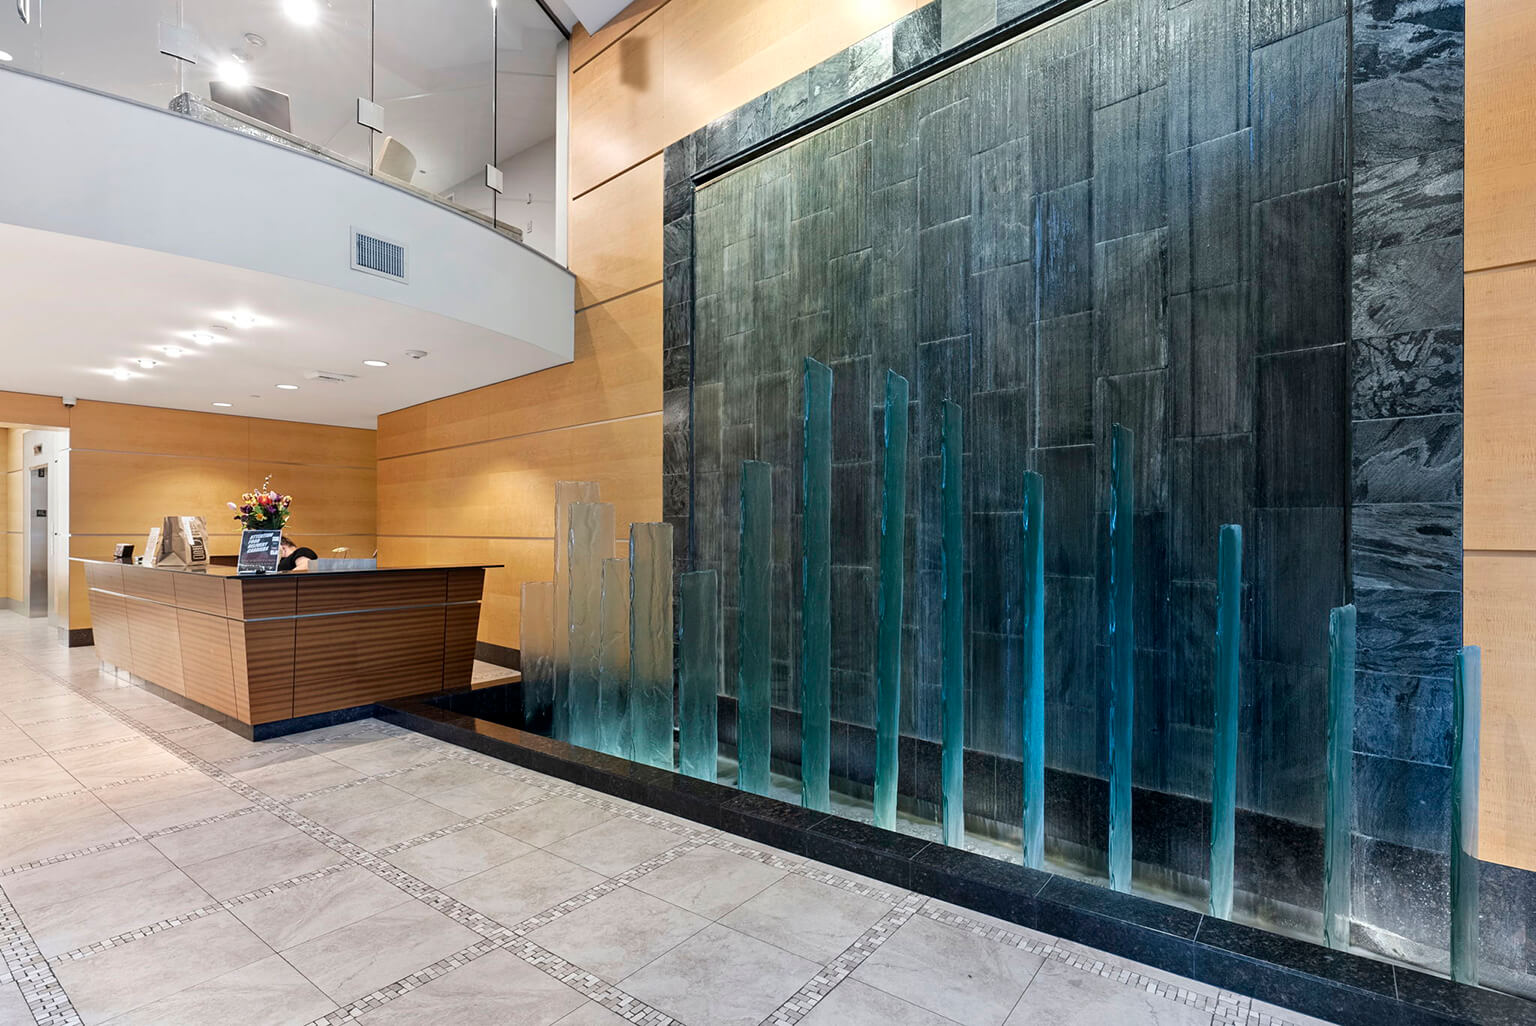 Impressive lobby with concierge desk and waterfall feature